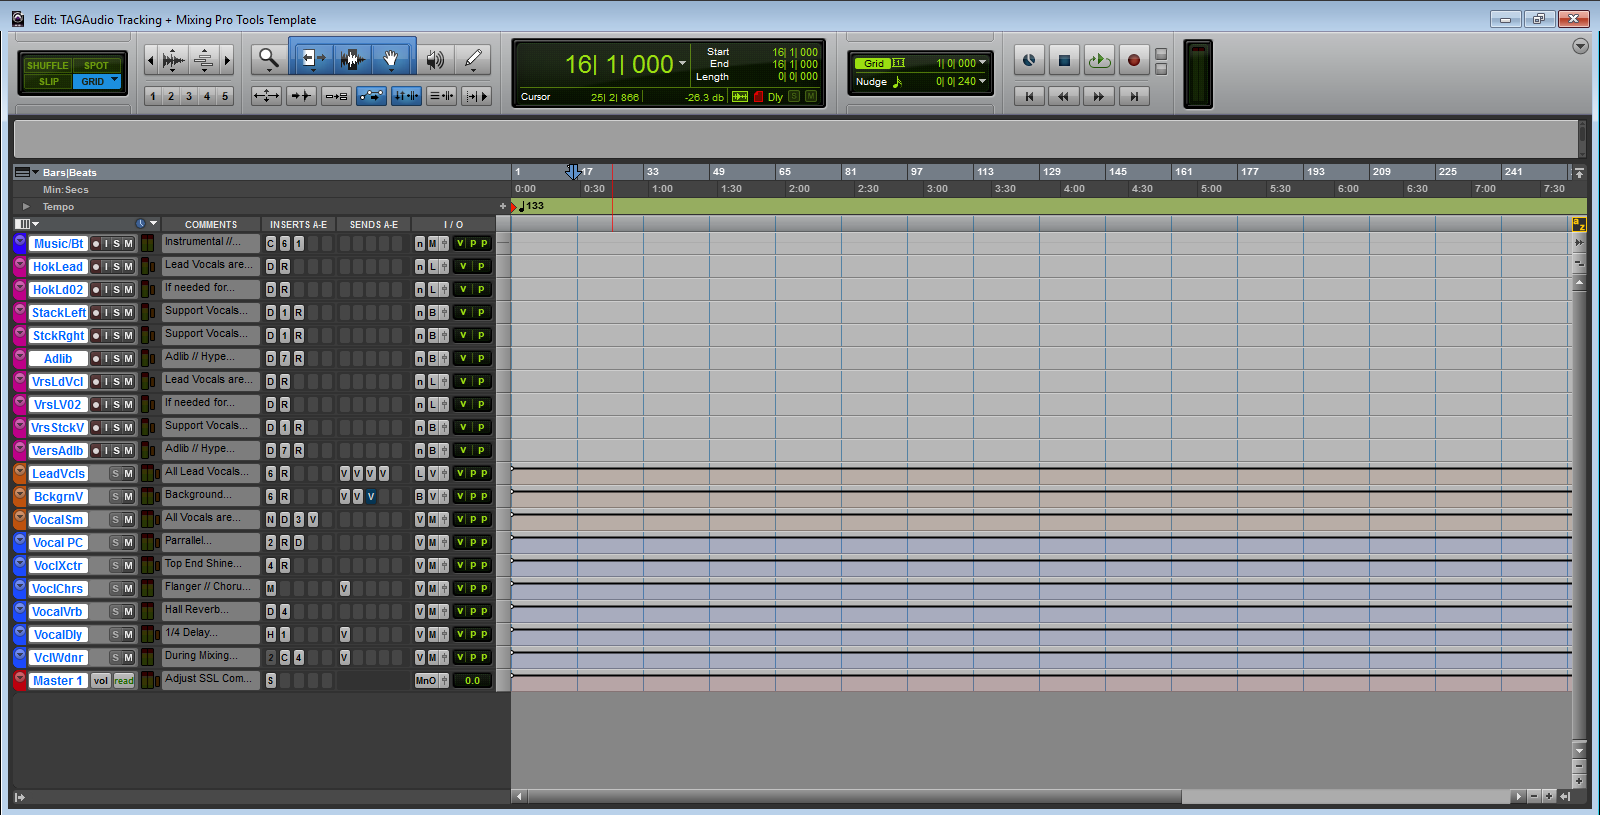 tagaudio tracking mixing pro tools template built with waves